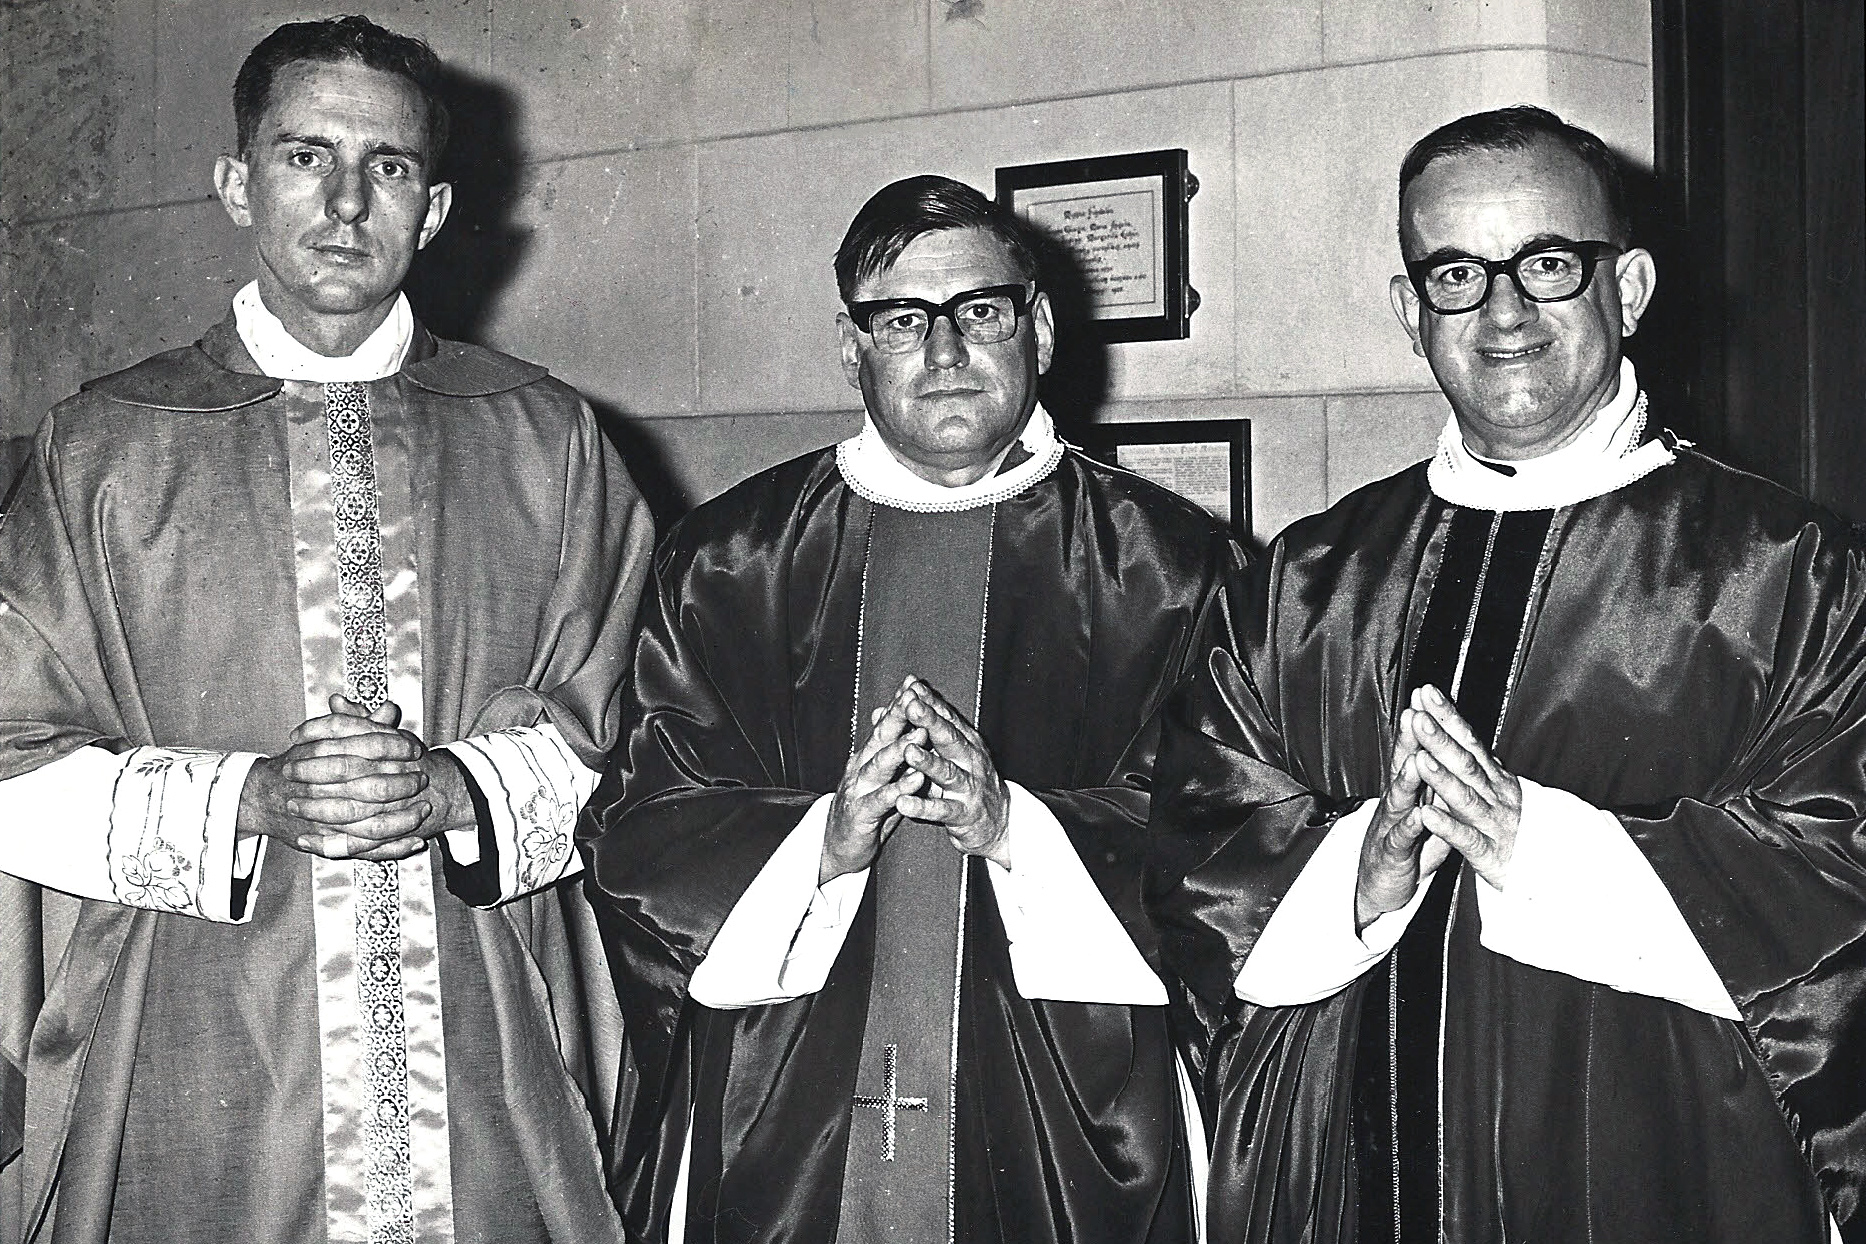 Left to Right – Fathers Geoffrey Beyer, John Lisle and Rodney Williams ordained to the priesthood at St Mary's Cathedral by Archbishop Launcelot John Goody on 19 October 1969. Photo: Supplied from the Archives of The Record from 1969.